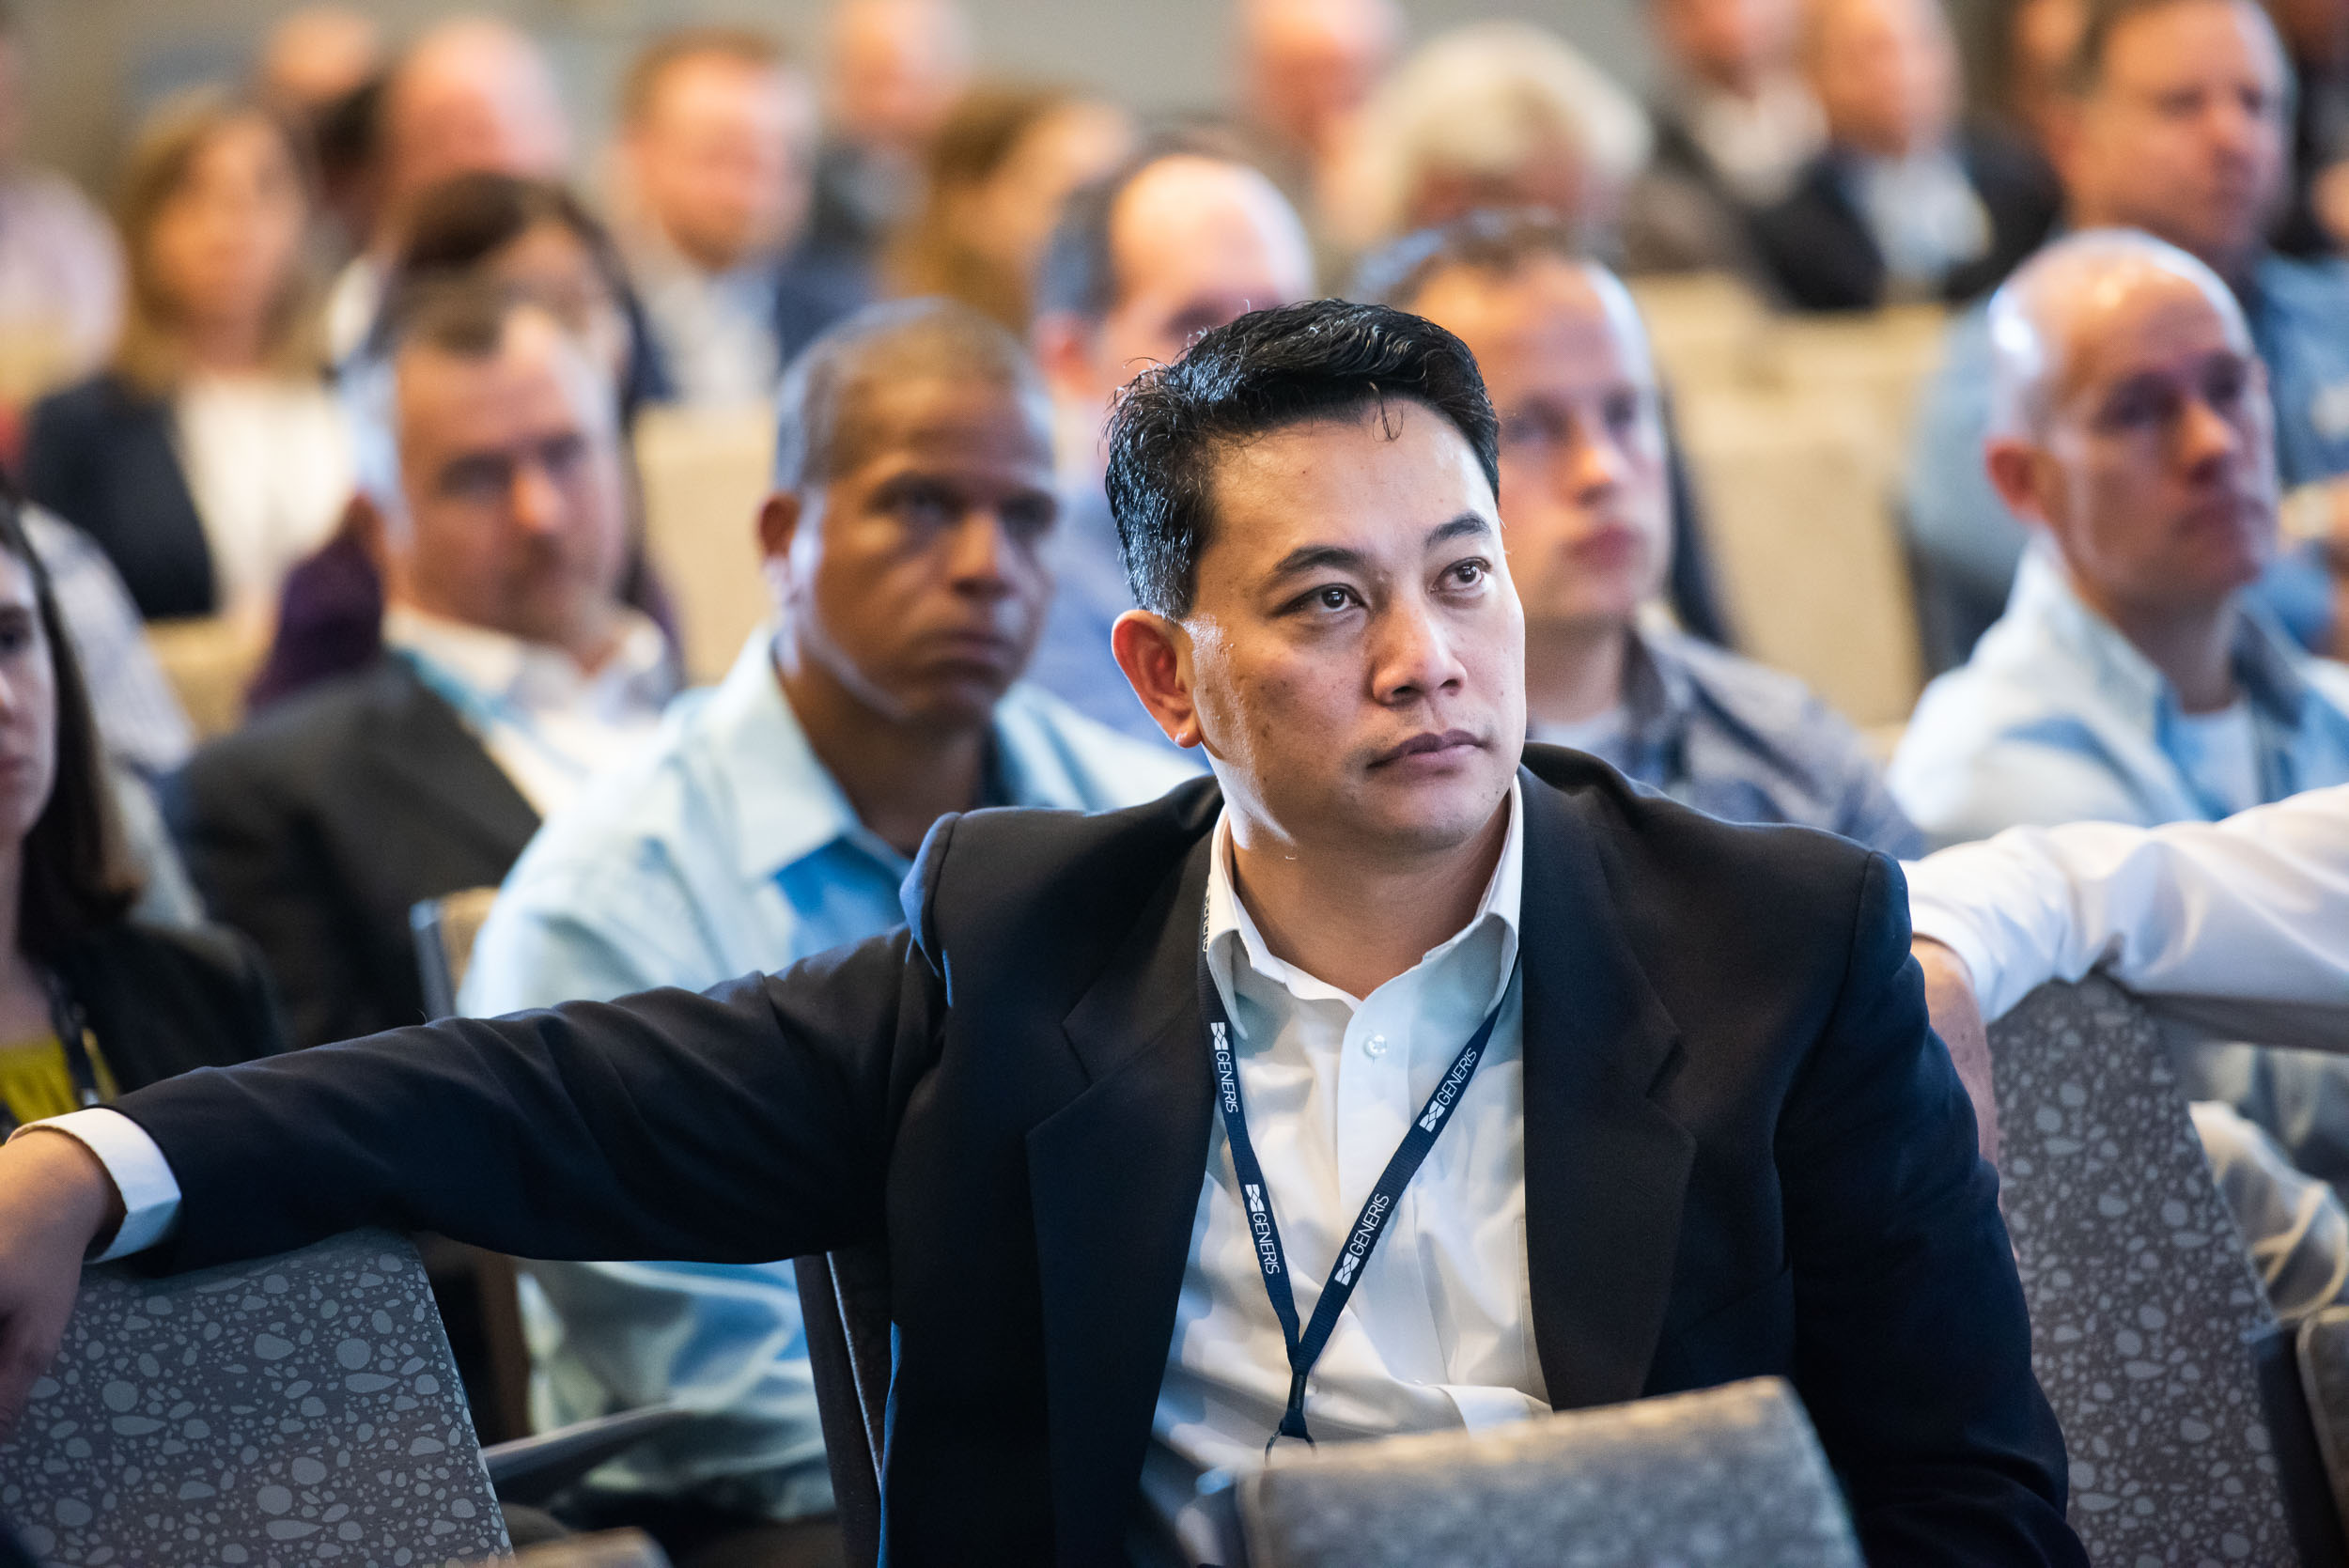 181024 - American Medical Device Summit - mark campbell photography-46_Resized_Resized.jpg